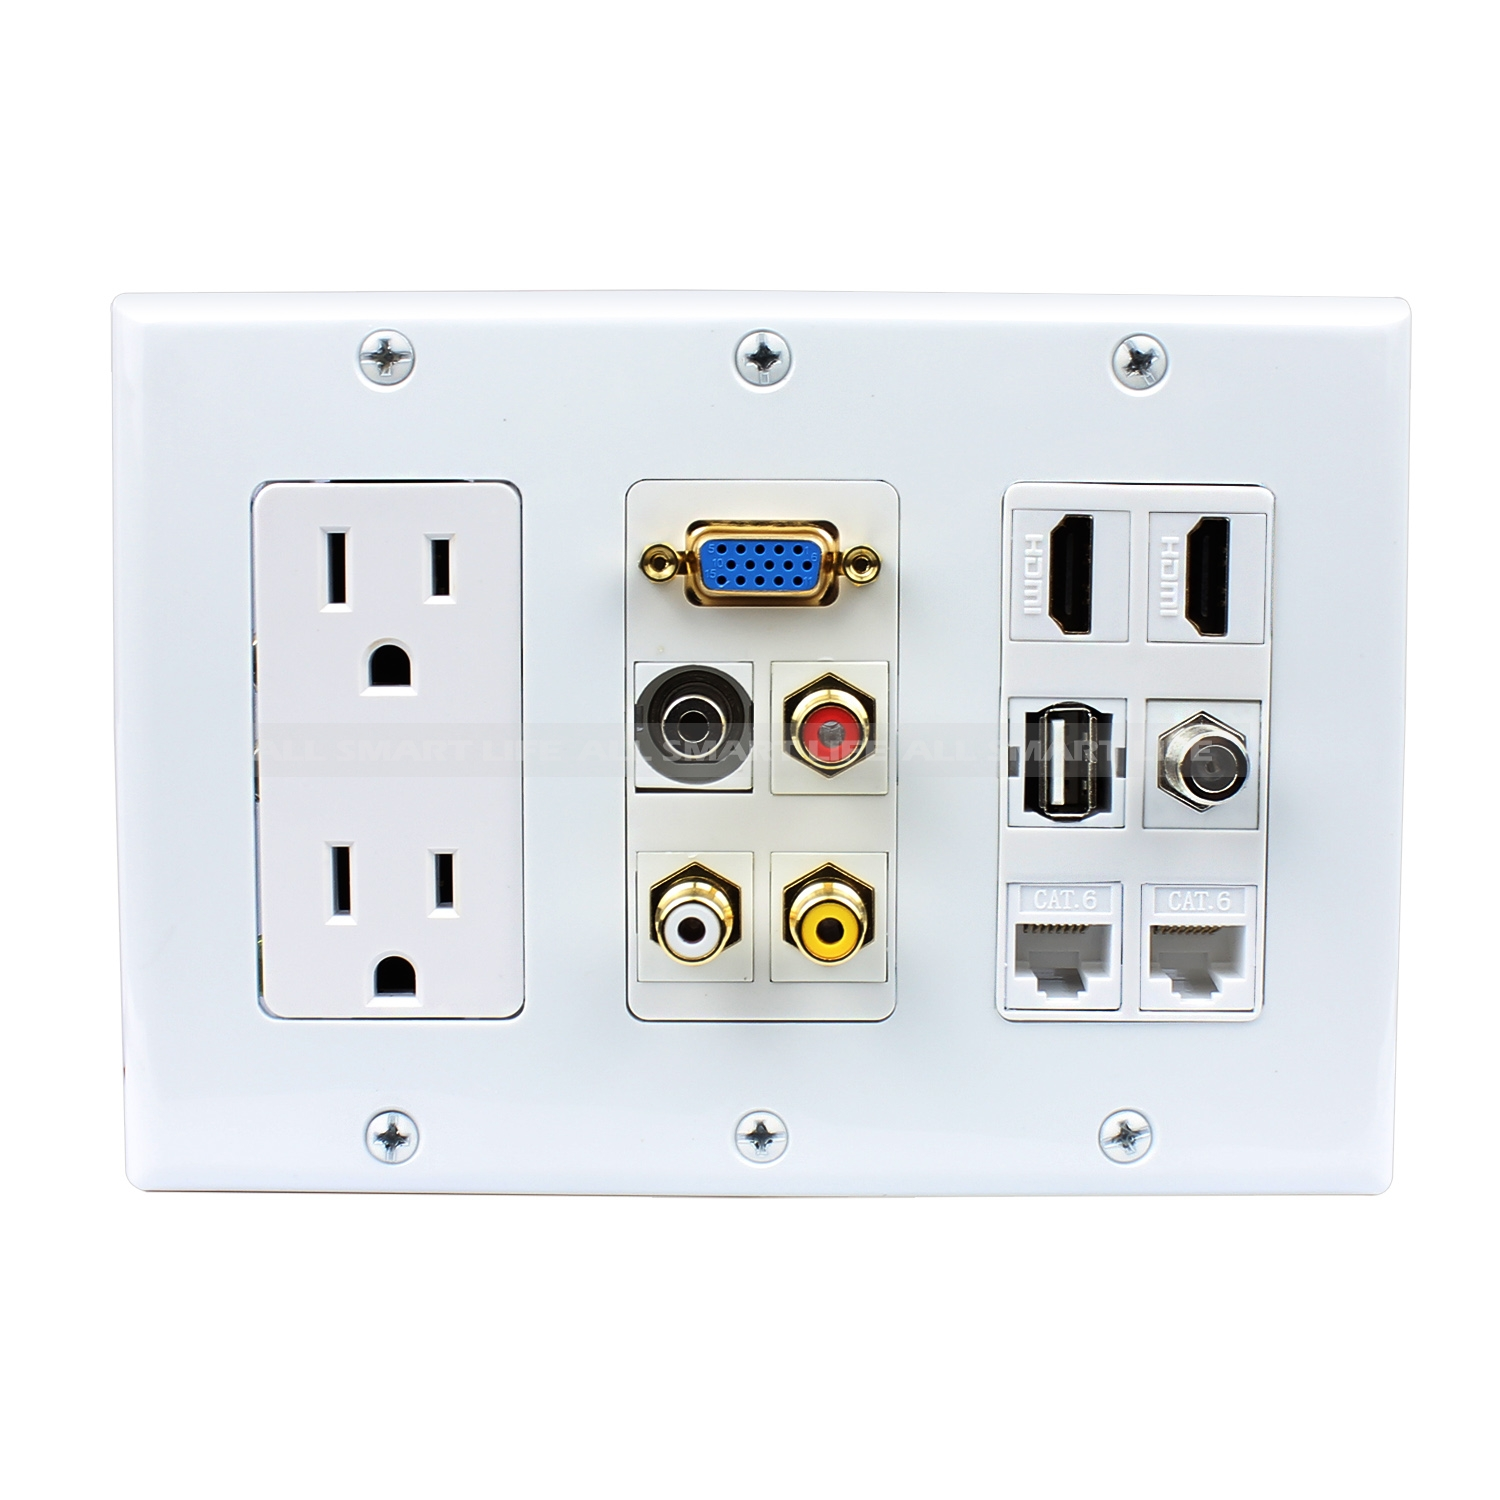 Hdmi Outlet Multipurpose Design 2x Power Outlet 2x Hdmi 1x Usb 3x Rca 2x Cat6